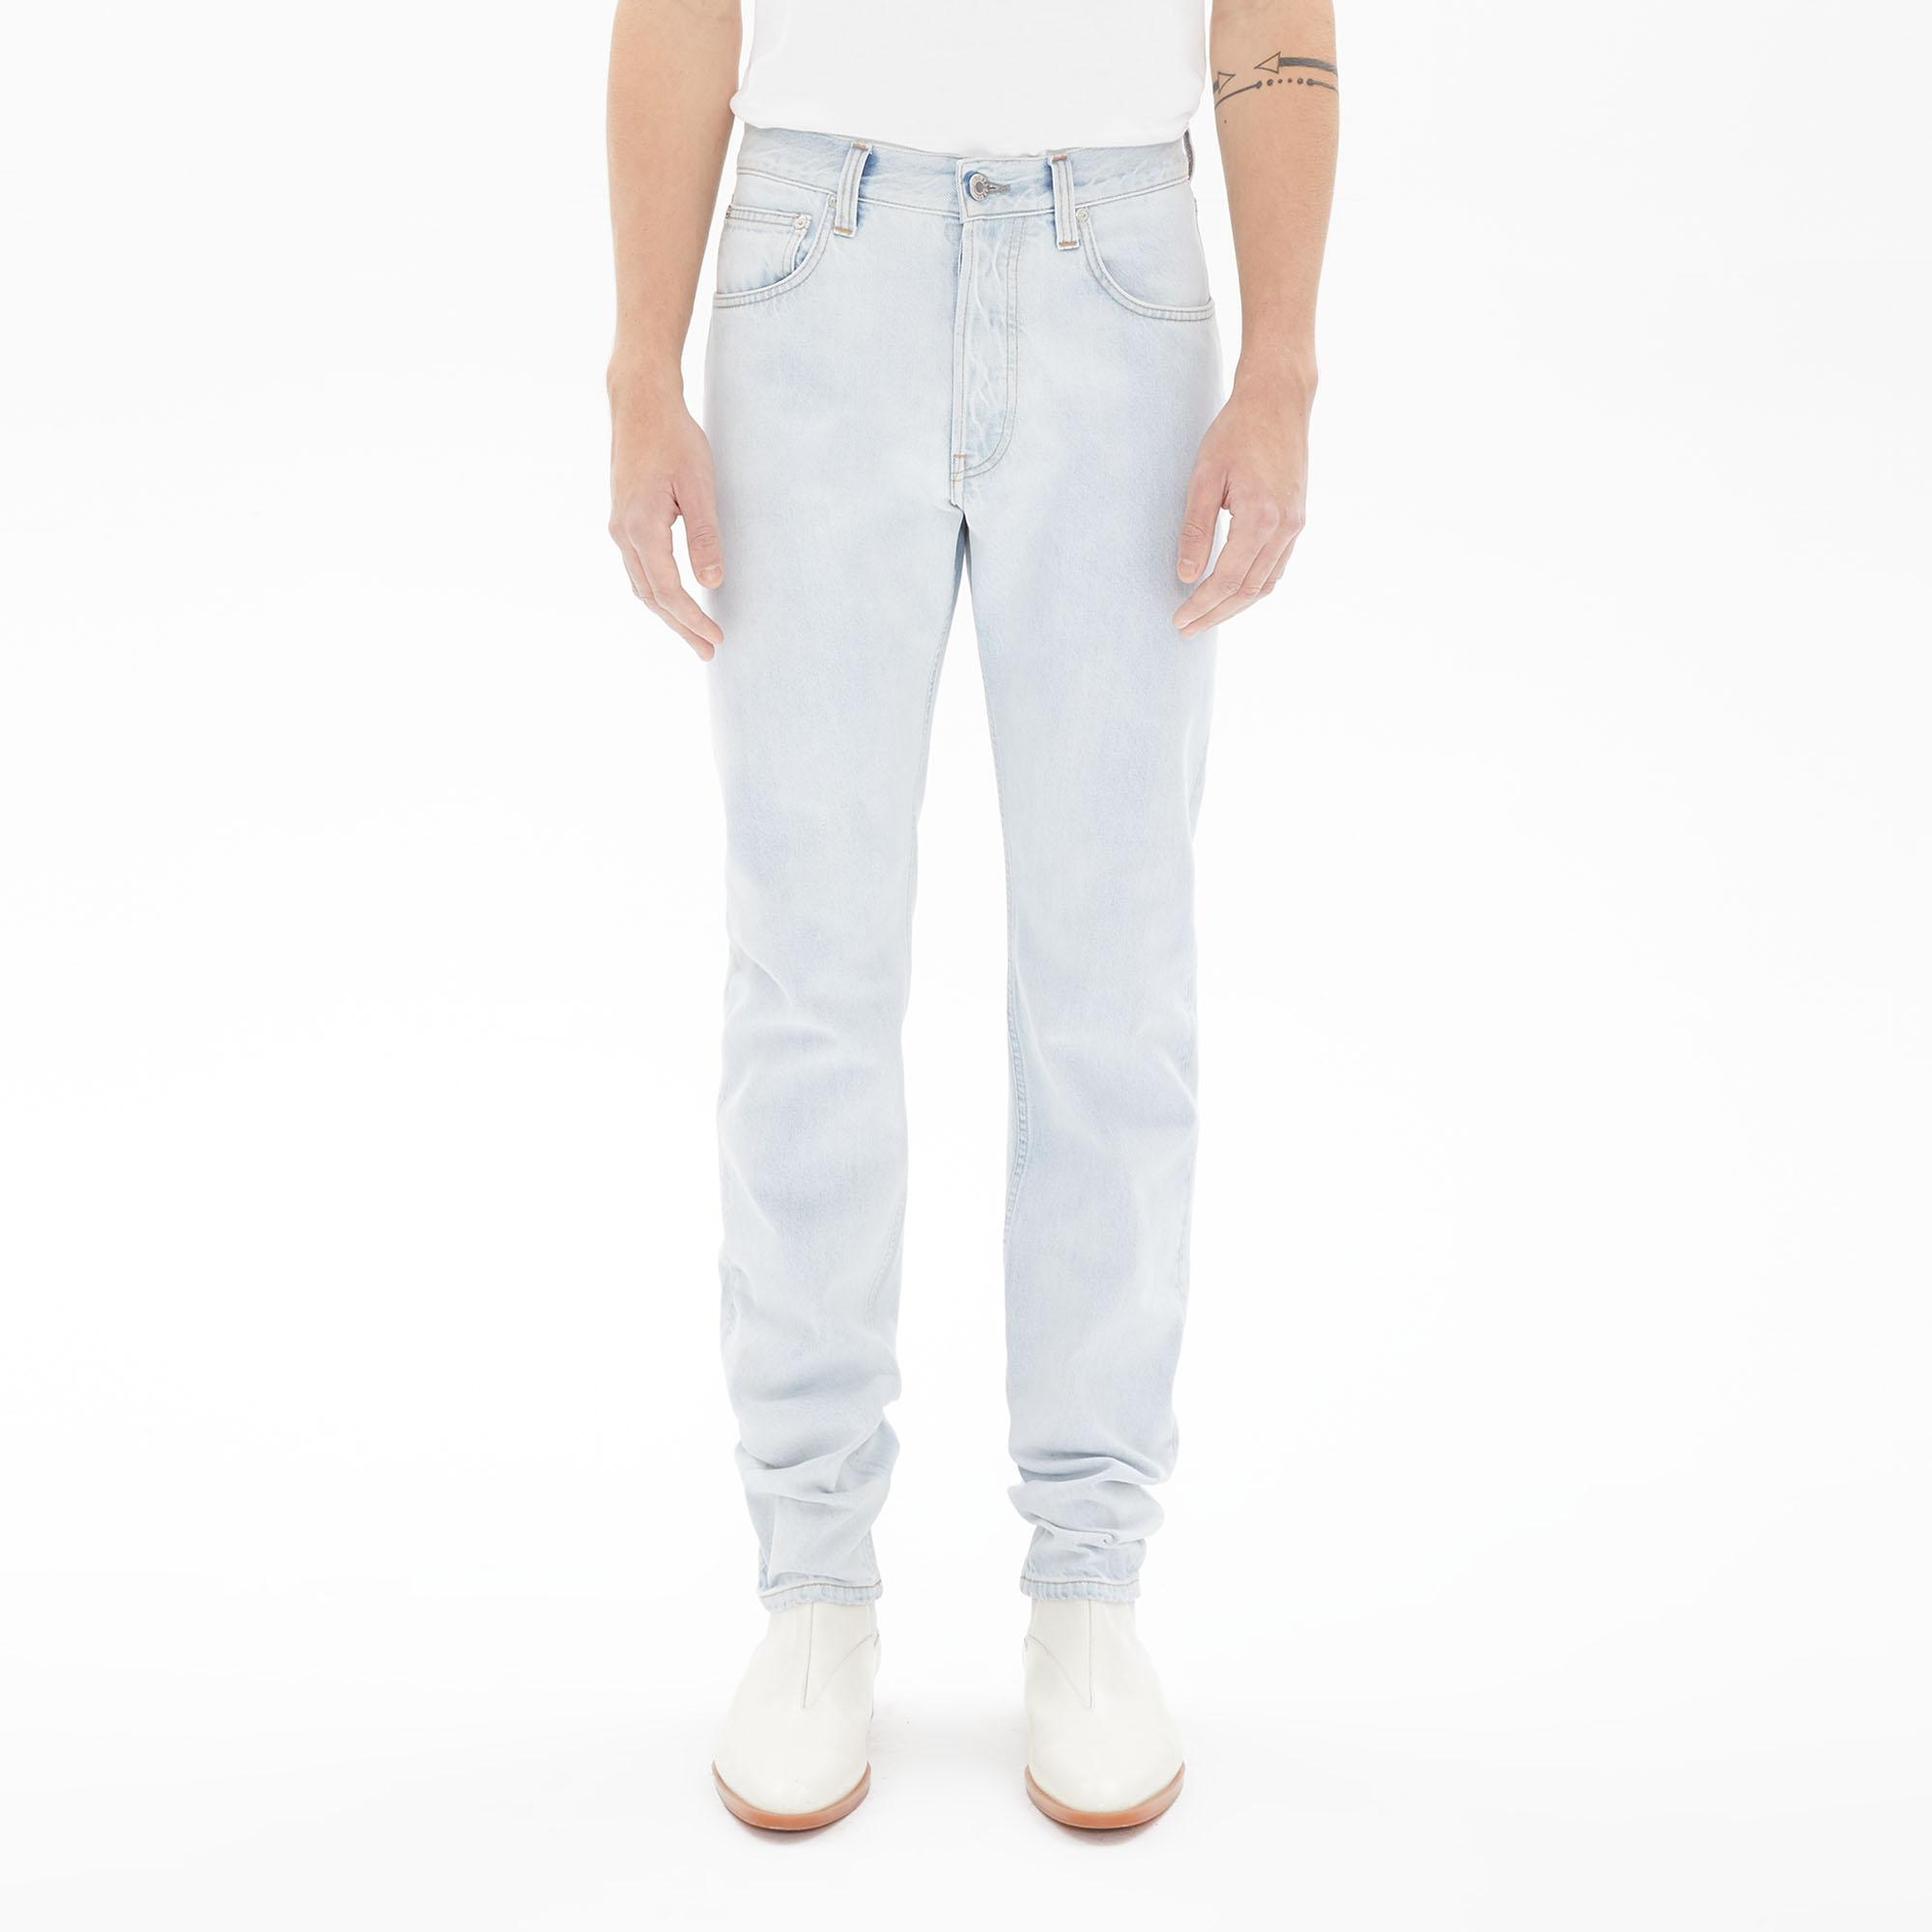 MASC HI STRAIGHT LEG JEANS by Helmut, available on helmutlang.com for ₹9800 Kim Kardashian Pants Exact Product